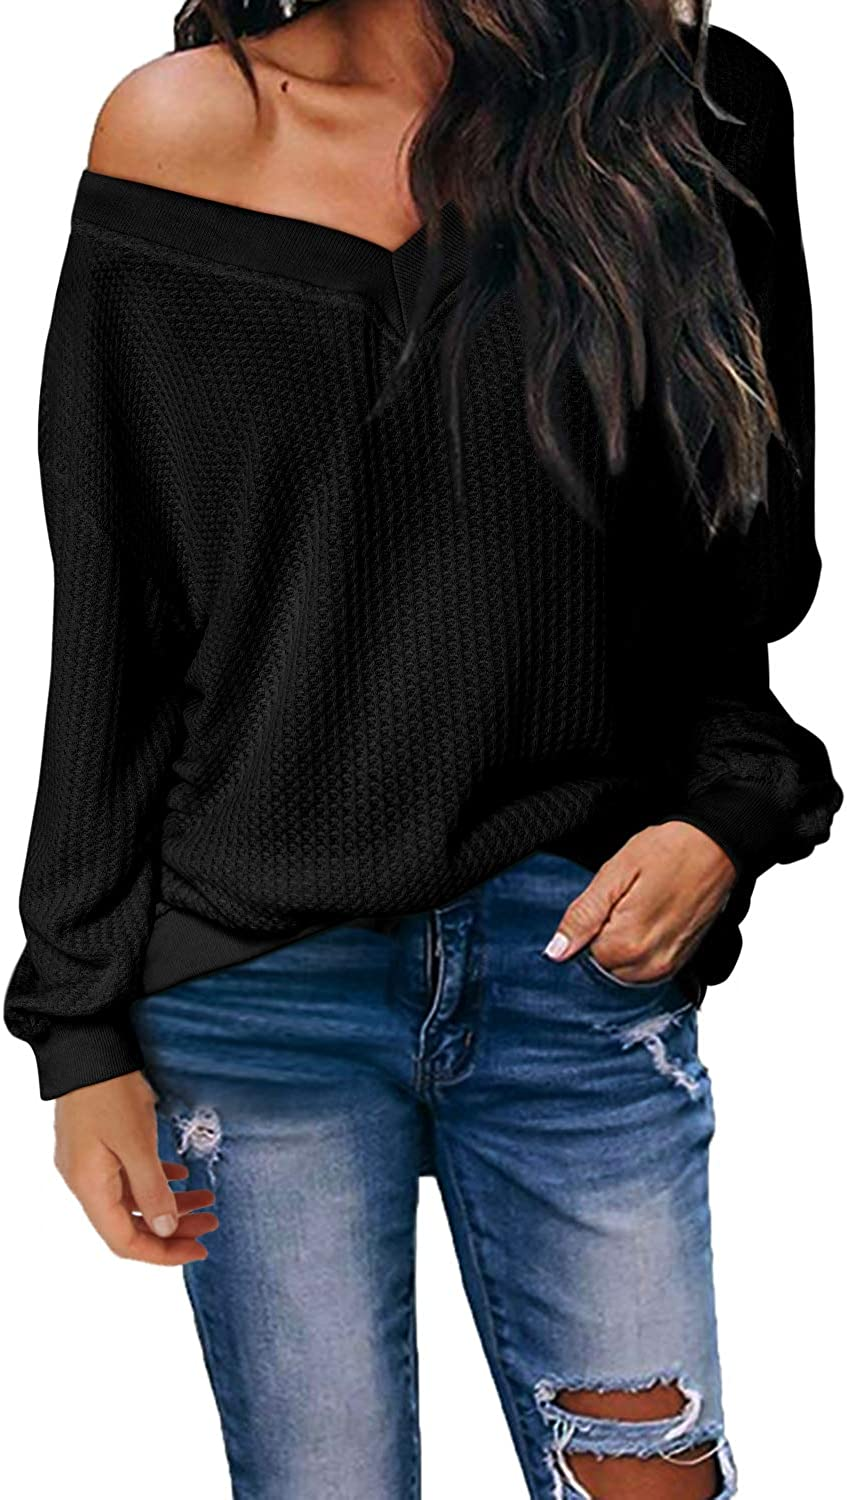 kenoce Jersey Mujer Otoño Suéter Fuera del Hombro Oversize Ancho Tejer Sueter Oversize Pullover Mujer Manga Larga Casual Suelto Blusa